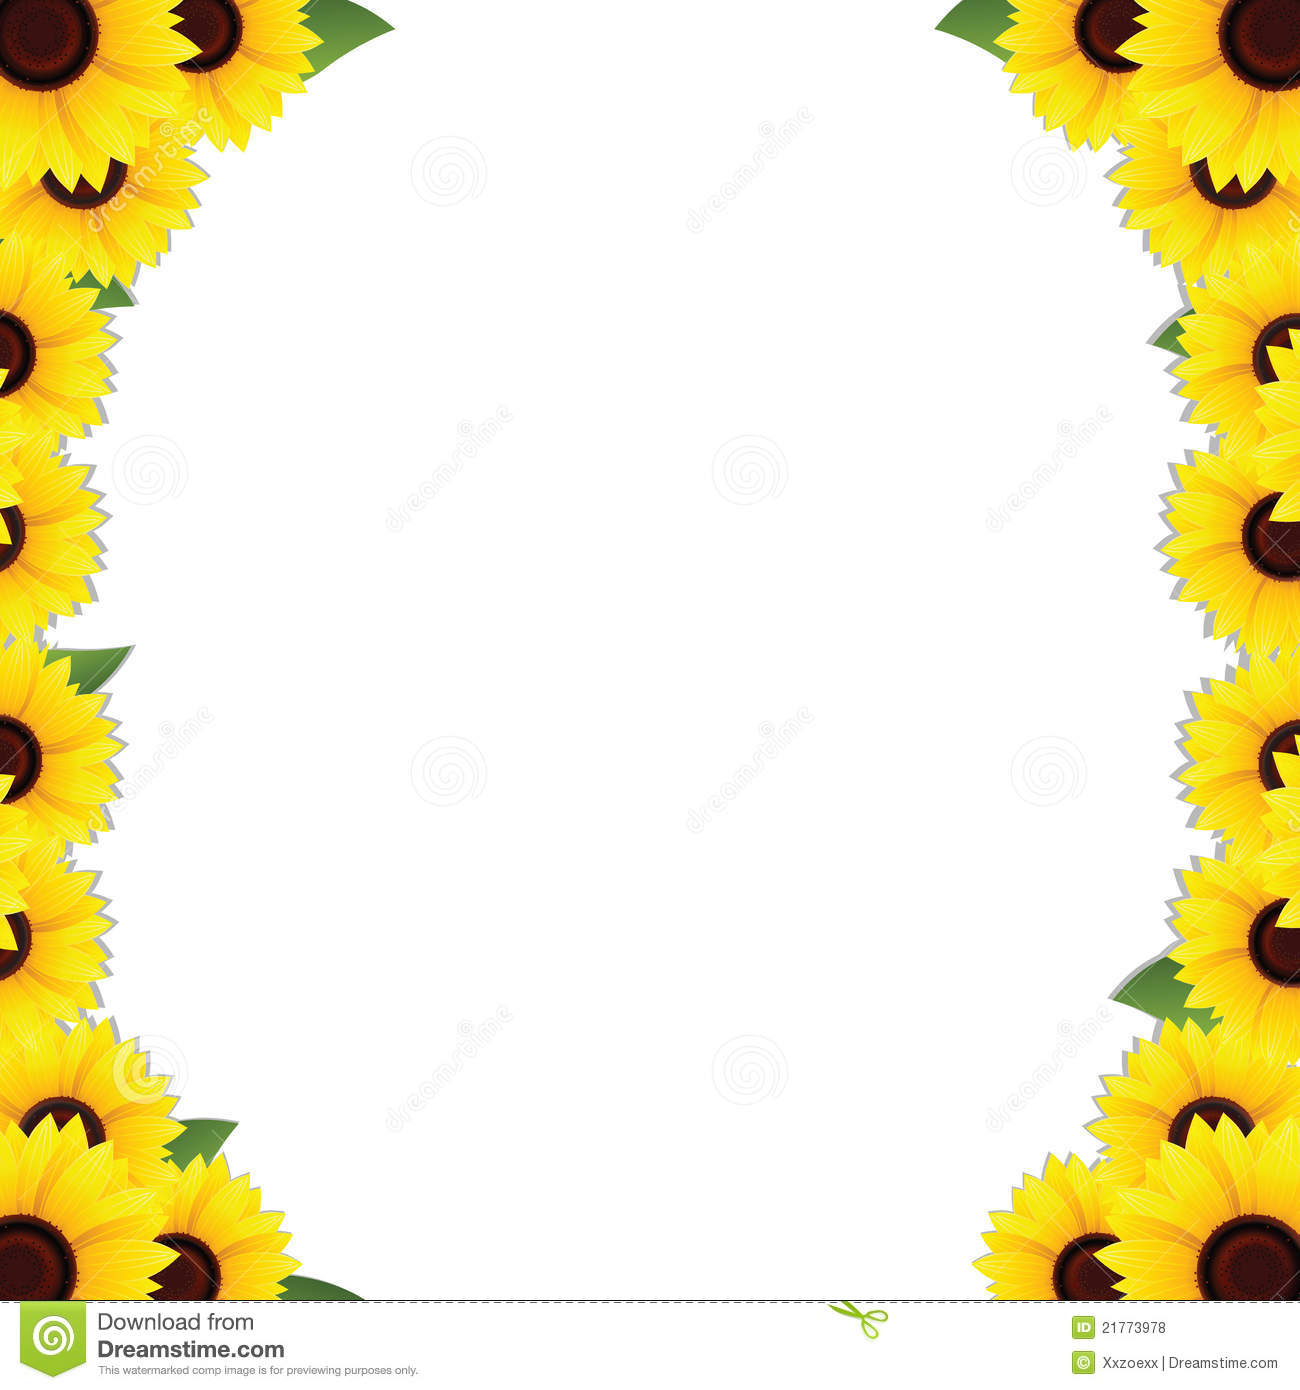 clip art borders sunflowers - photo #3